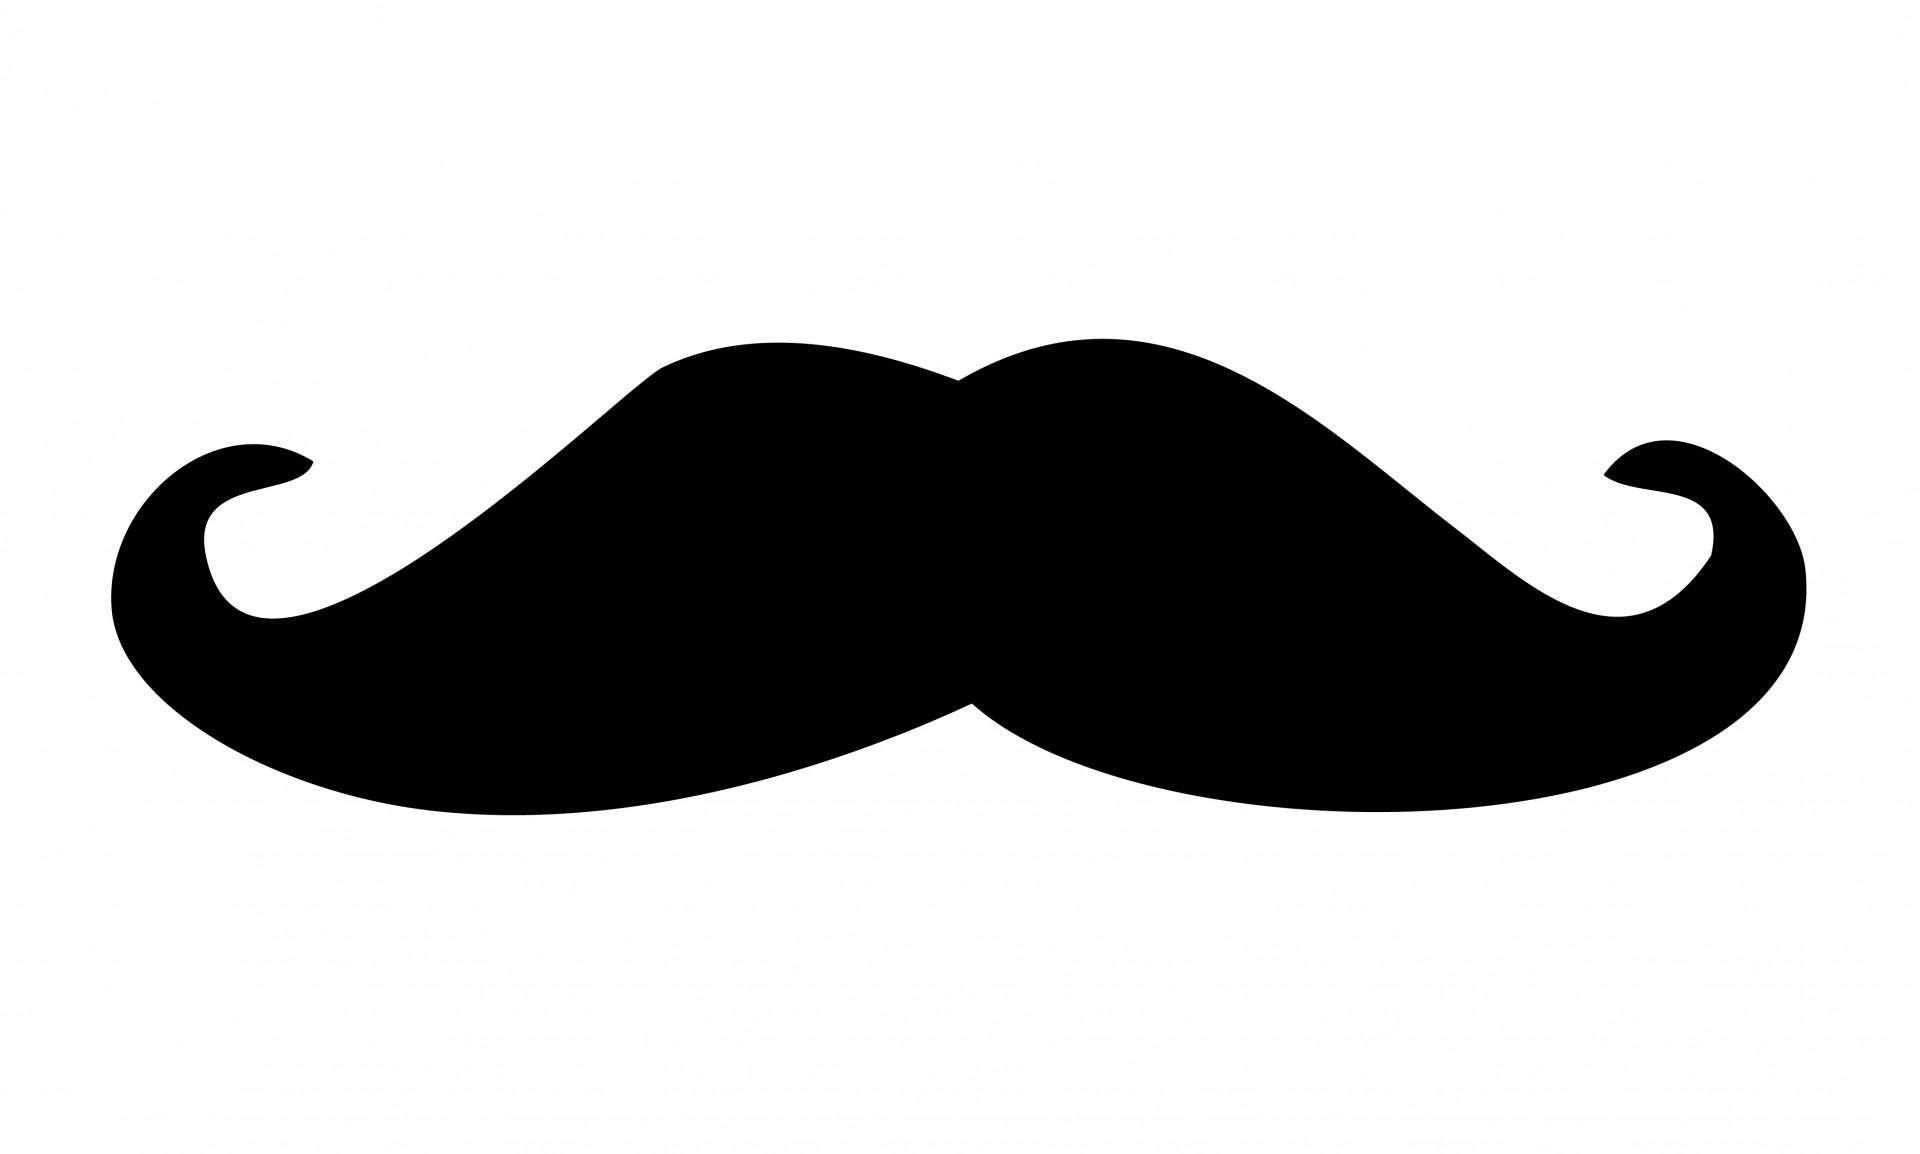 Free Mustache Transparent Background, Download Free Clip Art.